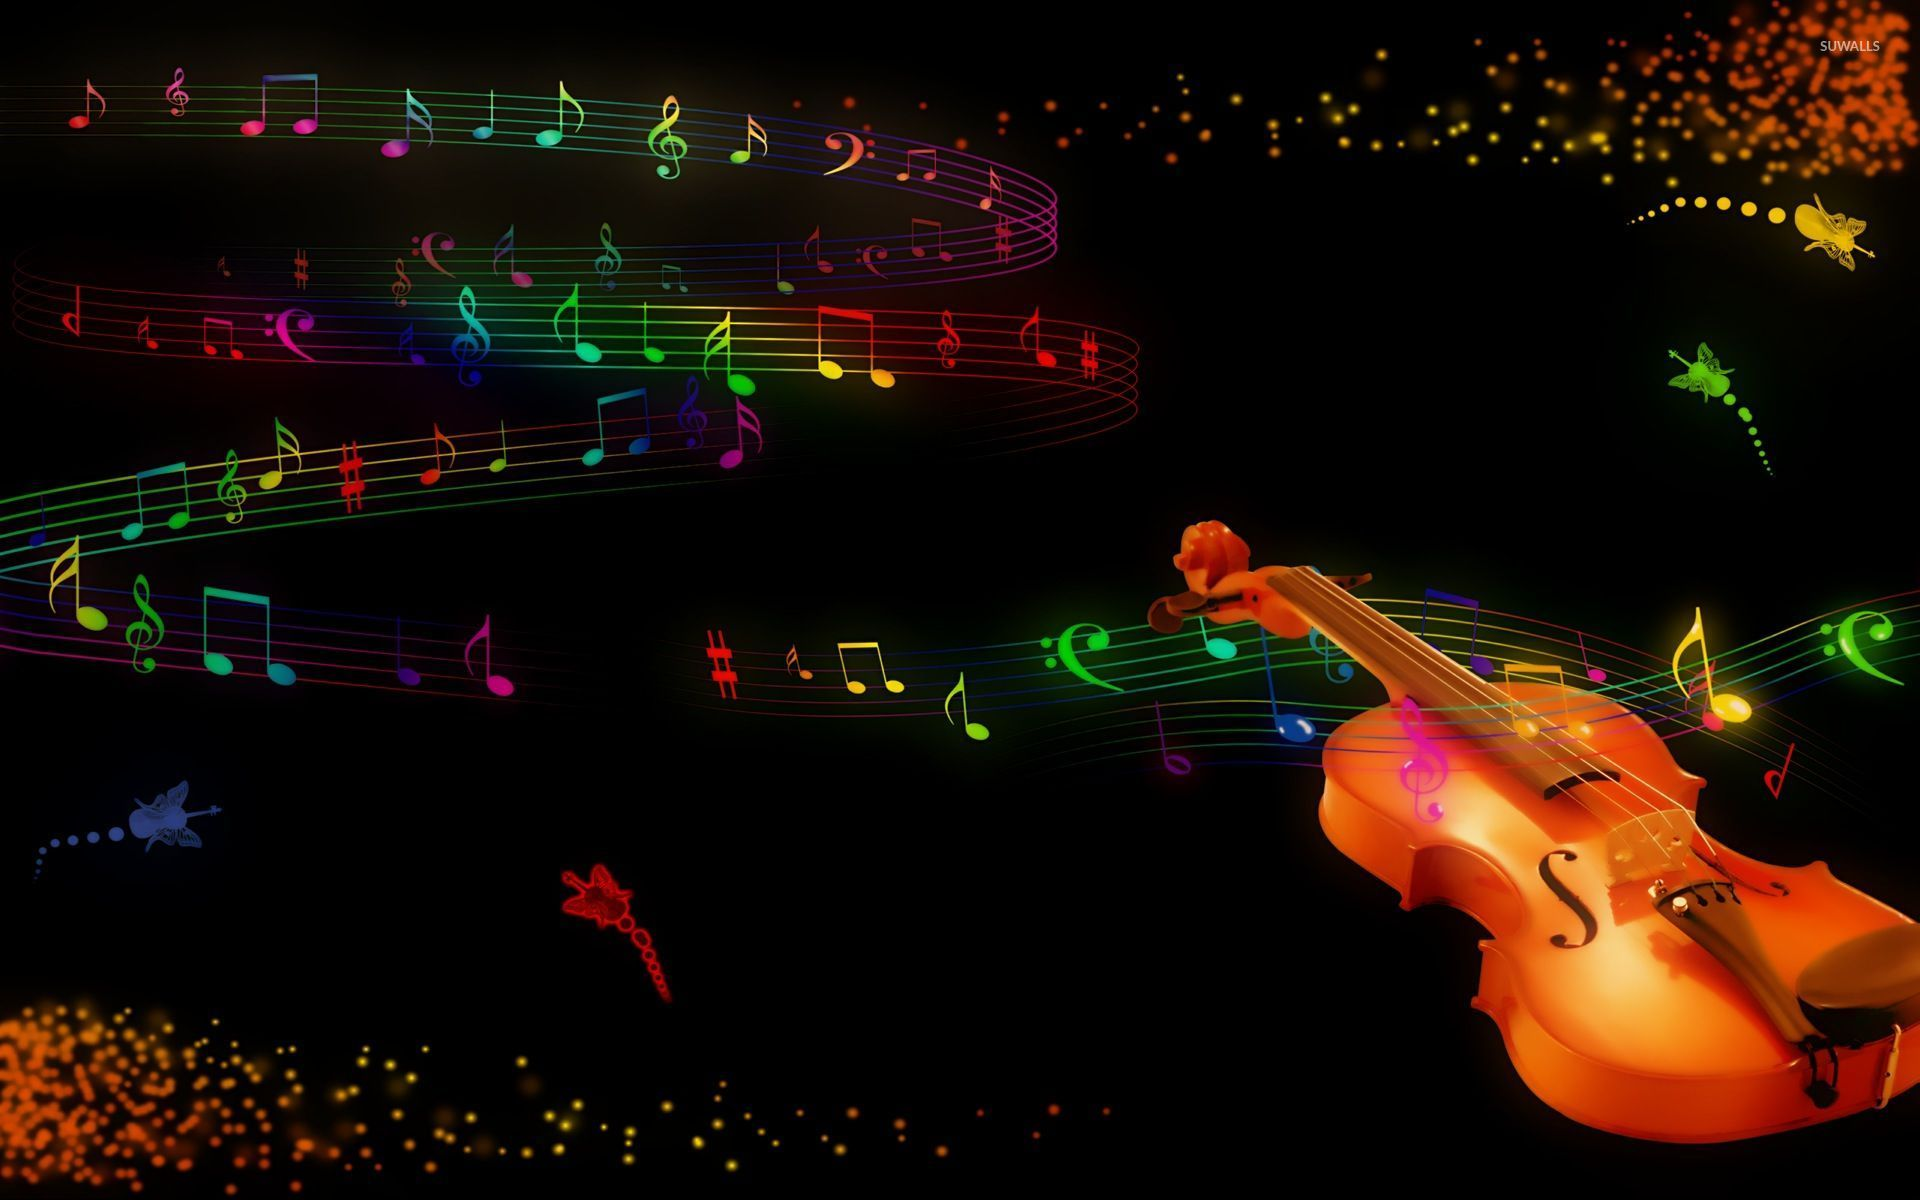 Violin and notes wallpaper - Digital Art wallpapers - #31635